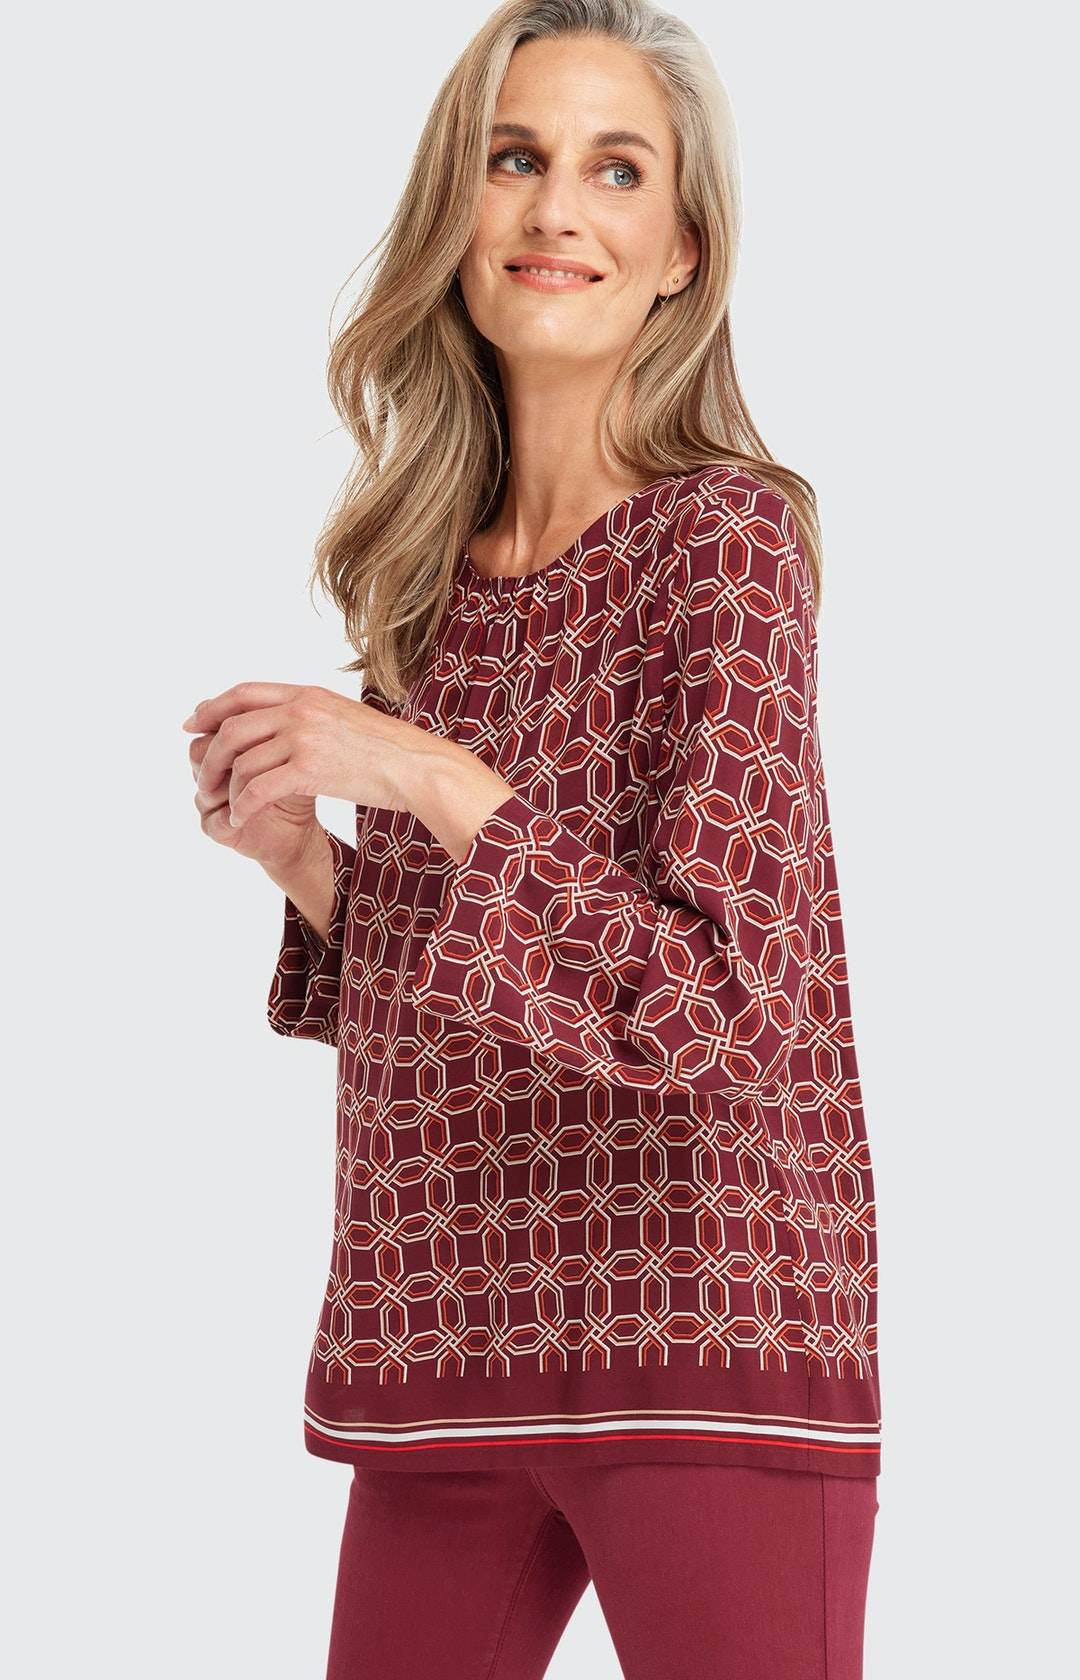 Shirtbluse mit Allover-Muster in Rot